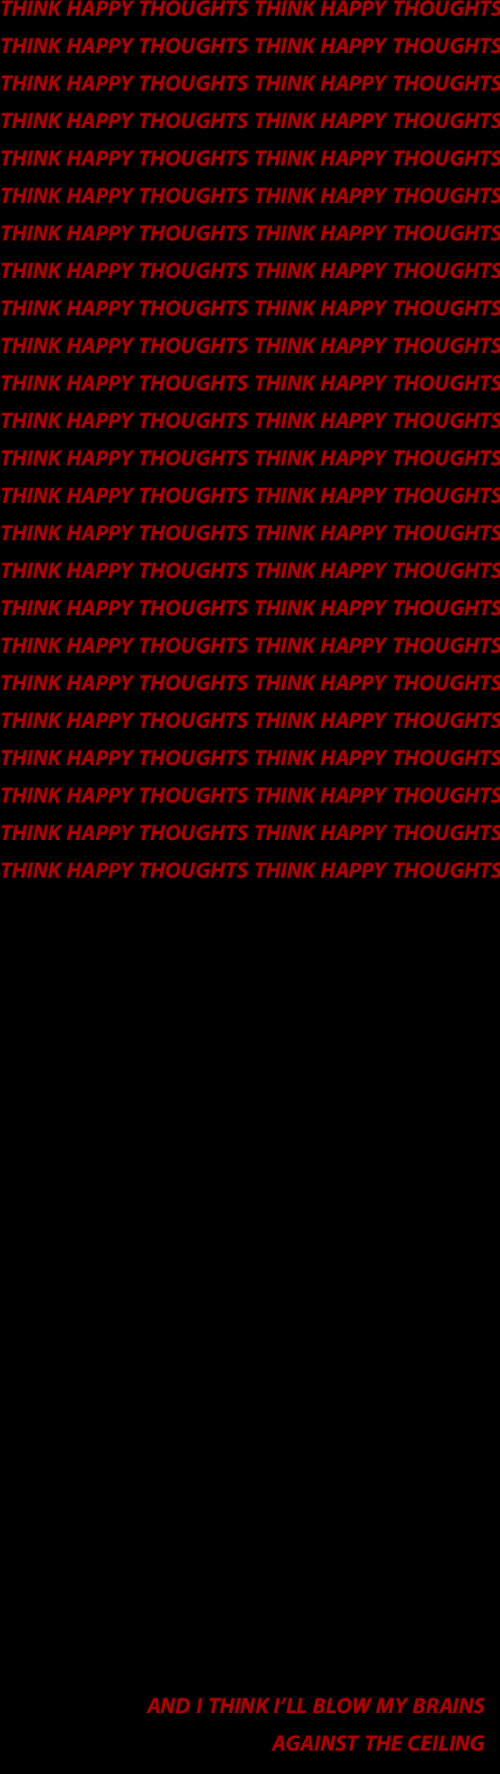 pll: THINK HAPPY THOUGHTS THINK HAPPY THOUGHTS  THINK HAPPY THOUGHTS THINK HAPPY THOUGHTS  THINK HAPPY THOUGHTS THINK HAPPY THOUGHTS  THINK HAPPY THOUGHTS THINK HAPPY THOUGHTS  THINK HAPPY THOUGHTS THINK HAPPY THOUGHTS  THINK HAPPY THOUGHTS THINK HAPPY THOUGHTS  THINK HAPPY THOUGHTS THINK HAPPY THOUGHTS  THINK HAPPY THOUGHTS THINK HAPPY THOUGHTS  THINK HAPPY THOUGHTS THINK HAPPY THOUGHTS  THINK HAPPY THOUGHTS THINK HAPPY THOUGHTS  THINK HAPPY THOUGHTS THINK HAPPY THOUGHTS  THINK HAPPY THOUGHTS THINK HAPPY THOUGHTS  THINK HAPPY THOUGHTS THINK HAPPY THOUGHTS  THINK HAPPY THOUGHTS THINK HAPPY THOUGHTS  THINK HAPPY THOUGHTS THINK HAPPY THOUGHTS  THINK HAPPY THOUGHTS THINK HAPPY THOUGHTS  THINK HAPPY THOUGHTS THINK HAPPY THOUGHTS  THINK HAPPY THOUGHTS THINK HAPPY THOUGHTS  THINK HAPPY THOUGHTS THINK HAPPY THOUGHTS  THINK HAPPY THOUGHTS THINK HAPPY THOUGHTS  THINK HAPPY THOUGHTS THINK HAPPY THOUGHTS  THINK HAPPY THOUGHTS THINK HAPPY THOUGHTS  THINK HAPPY THOUGHTS THINK HAPPY THOUGHTS  THINK HAPPY THOUGHTS THINK HAPPY THOUGHTS   AND I THINK P'LL BLOW MY BRAINS  AGAINST THE CEILING